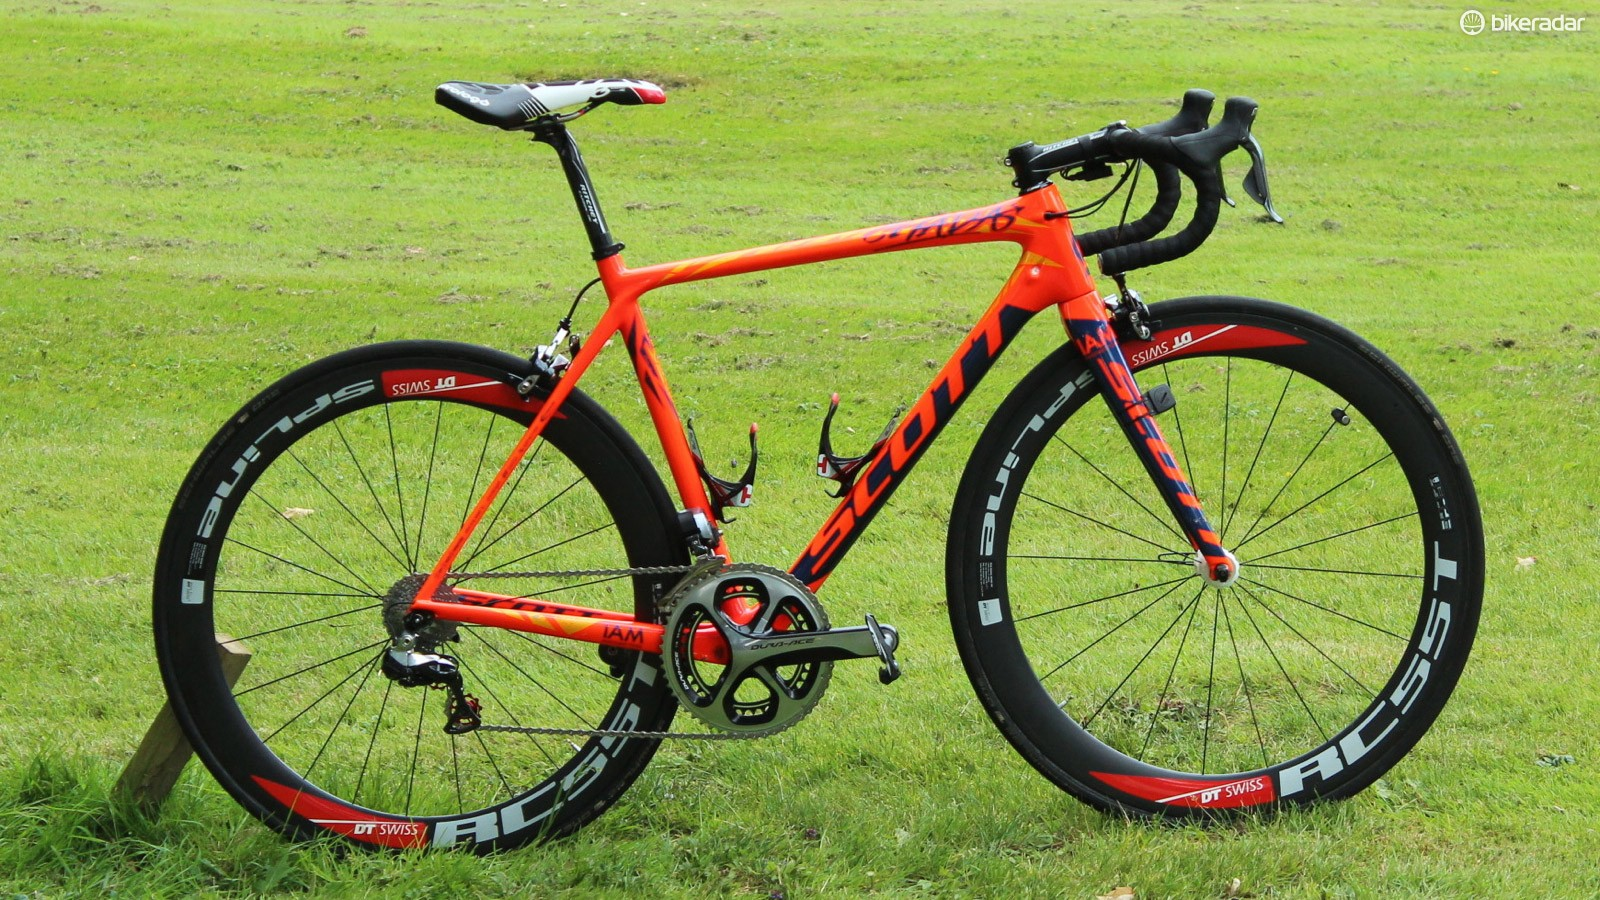 Sylvain Chavanel of IAM Cycling has a custom-painted Scott Addict for this year's Tour de France